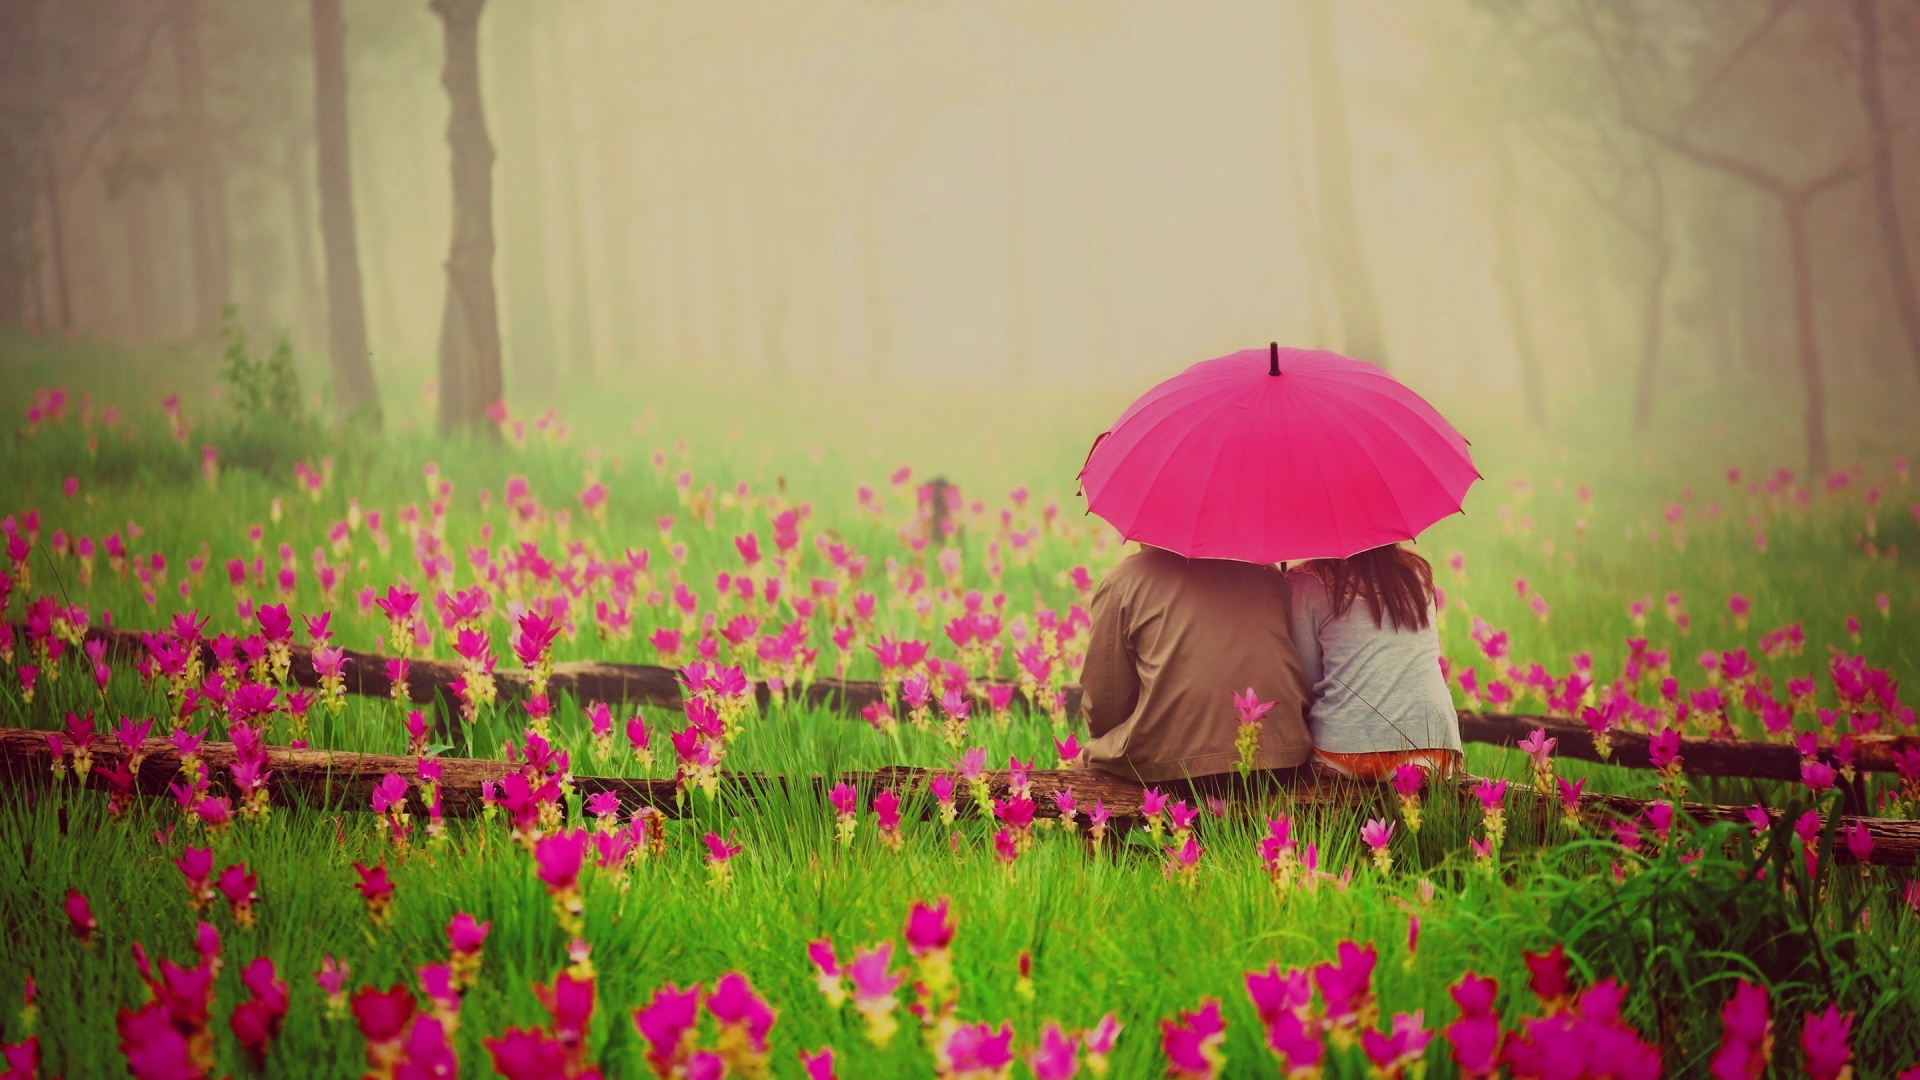 Love Wallpapers With Flowers : Romantic Love Flowers Pictures 20 cool Hd Wallpaper - Hdlovewall.com